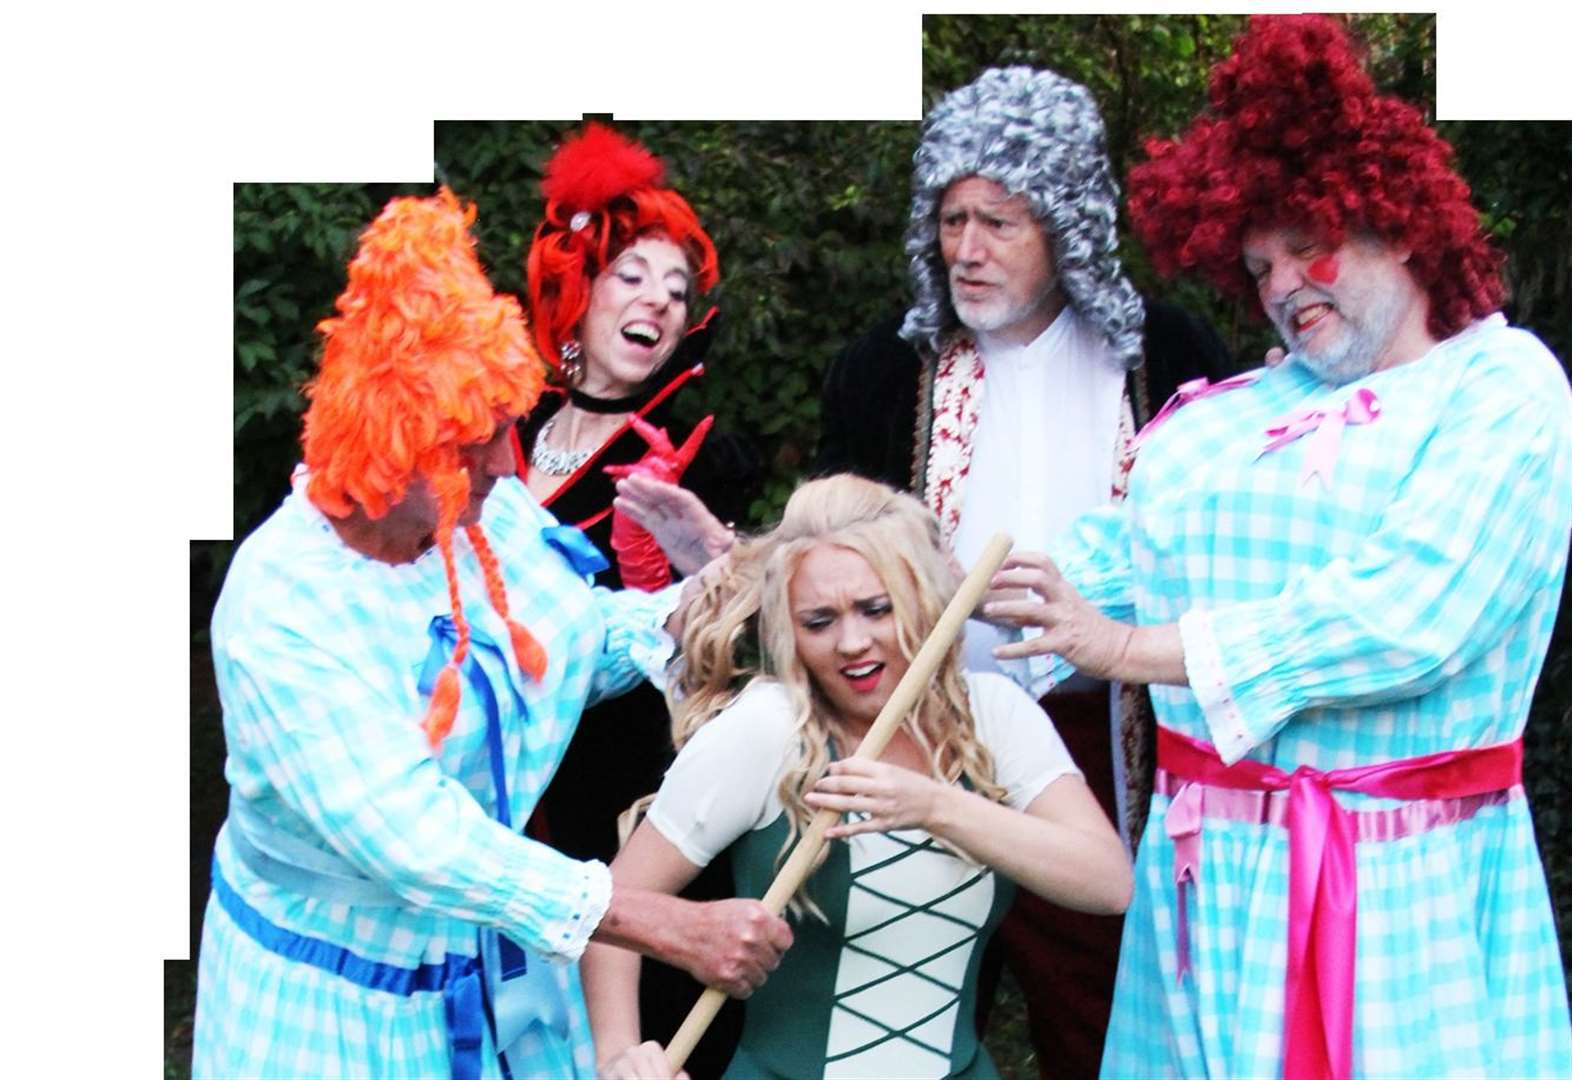 It's panto season at Stamford Corn Exchange - Oh, yes it is!